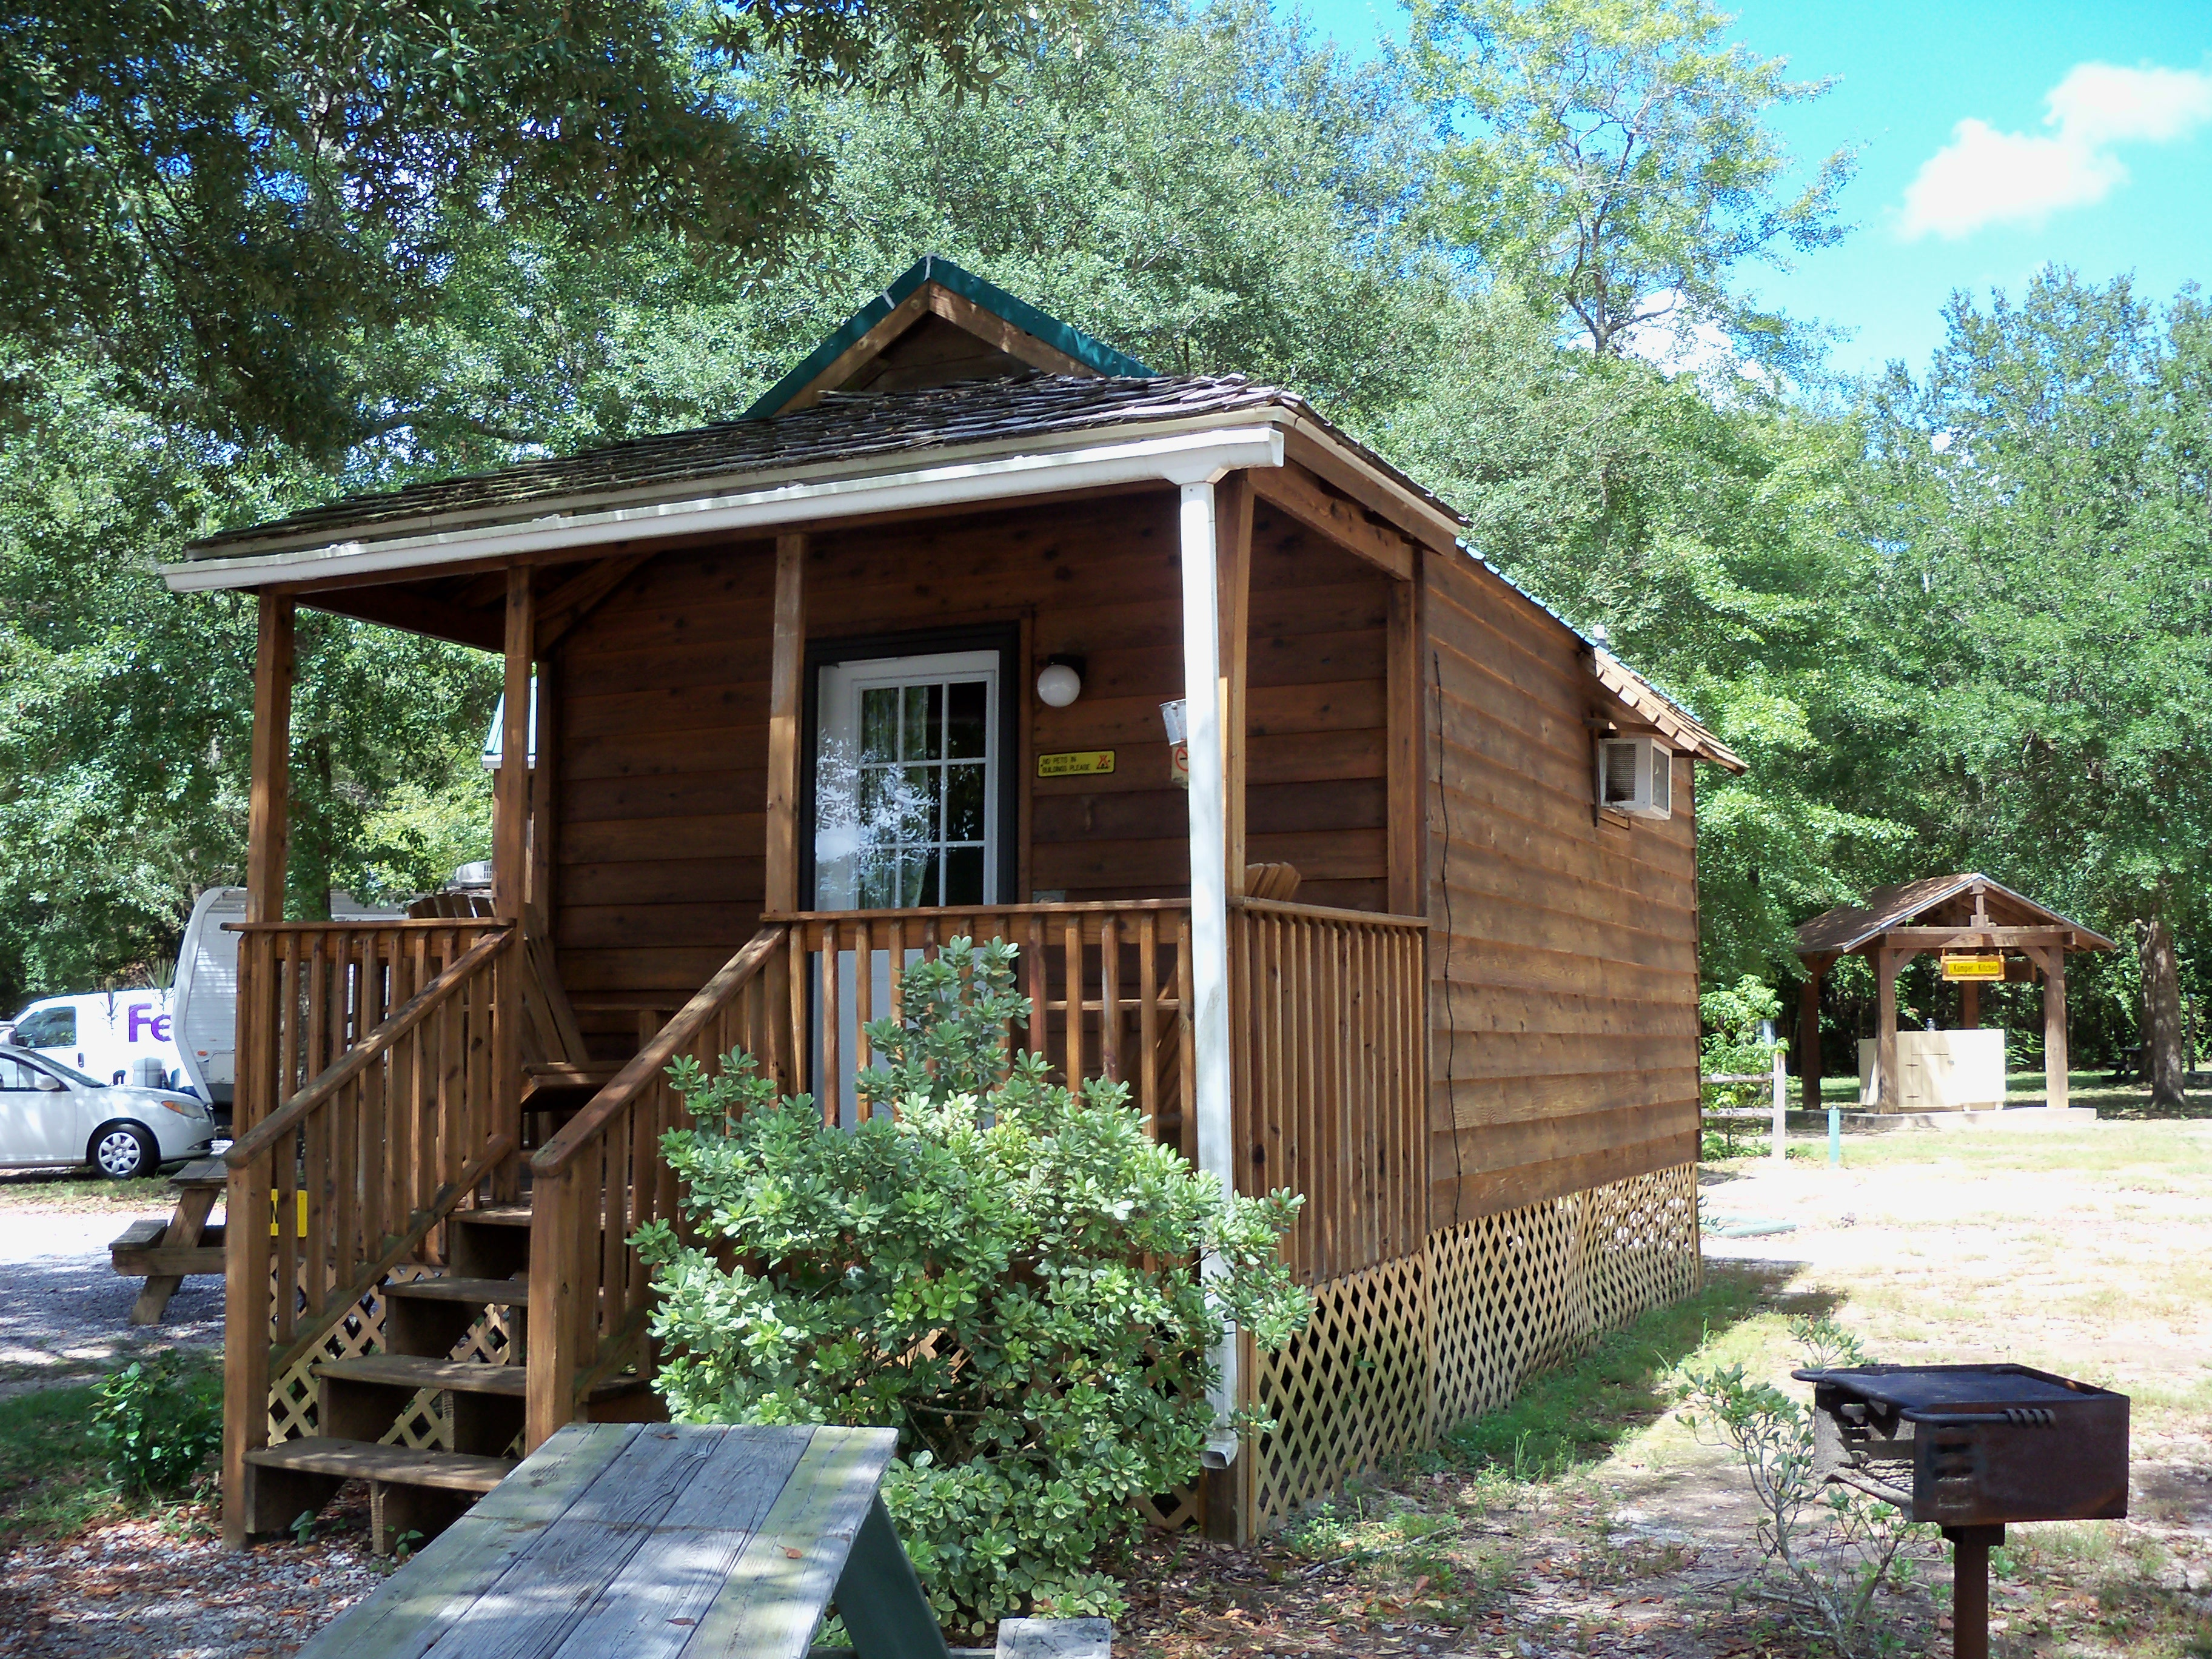 to accommodate it blue baths cabins cabin ci ridge mountain i in of clouds rentals is county downtown the florida has vacation close fannin guests and bedrooms rental off home aska will road historic